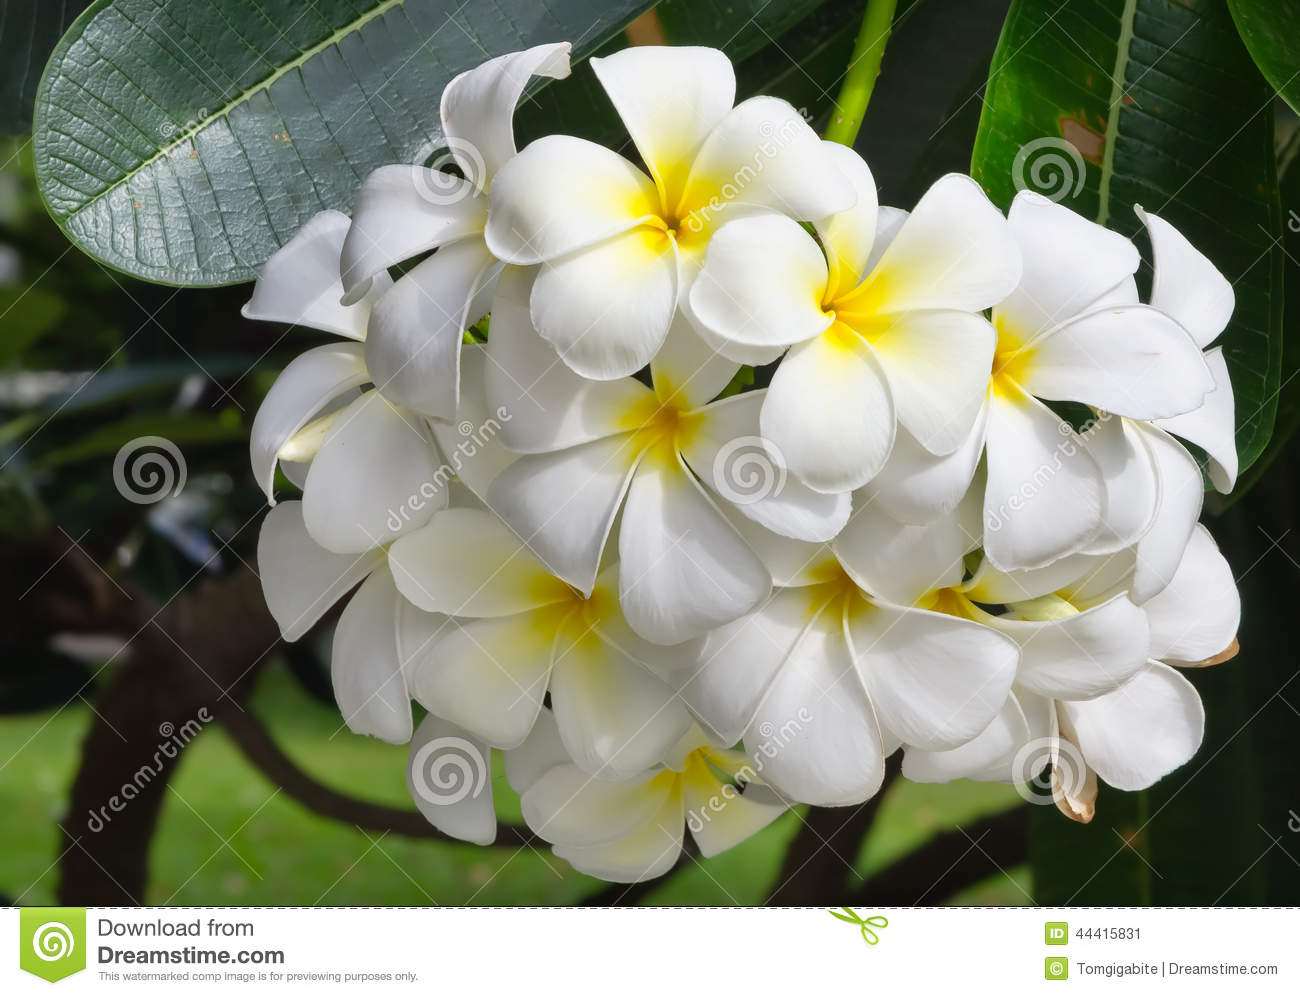 white-plumeria-flower-beautiful-pagoda-tree-temple-tree-44415831 Pagoda Garden Design Plans on japanese pagoda plans, garden pagoda lanterns, garden statuary, pagoda design plans, pagoda house plans, square foot gardening plans, form cement chinese pagoda plans, wood pagoda plans, outdoor fireplace plans, pagoda construction plans, pagoda structure plans,